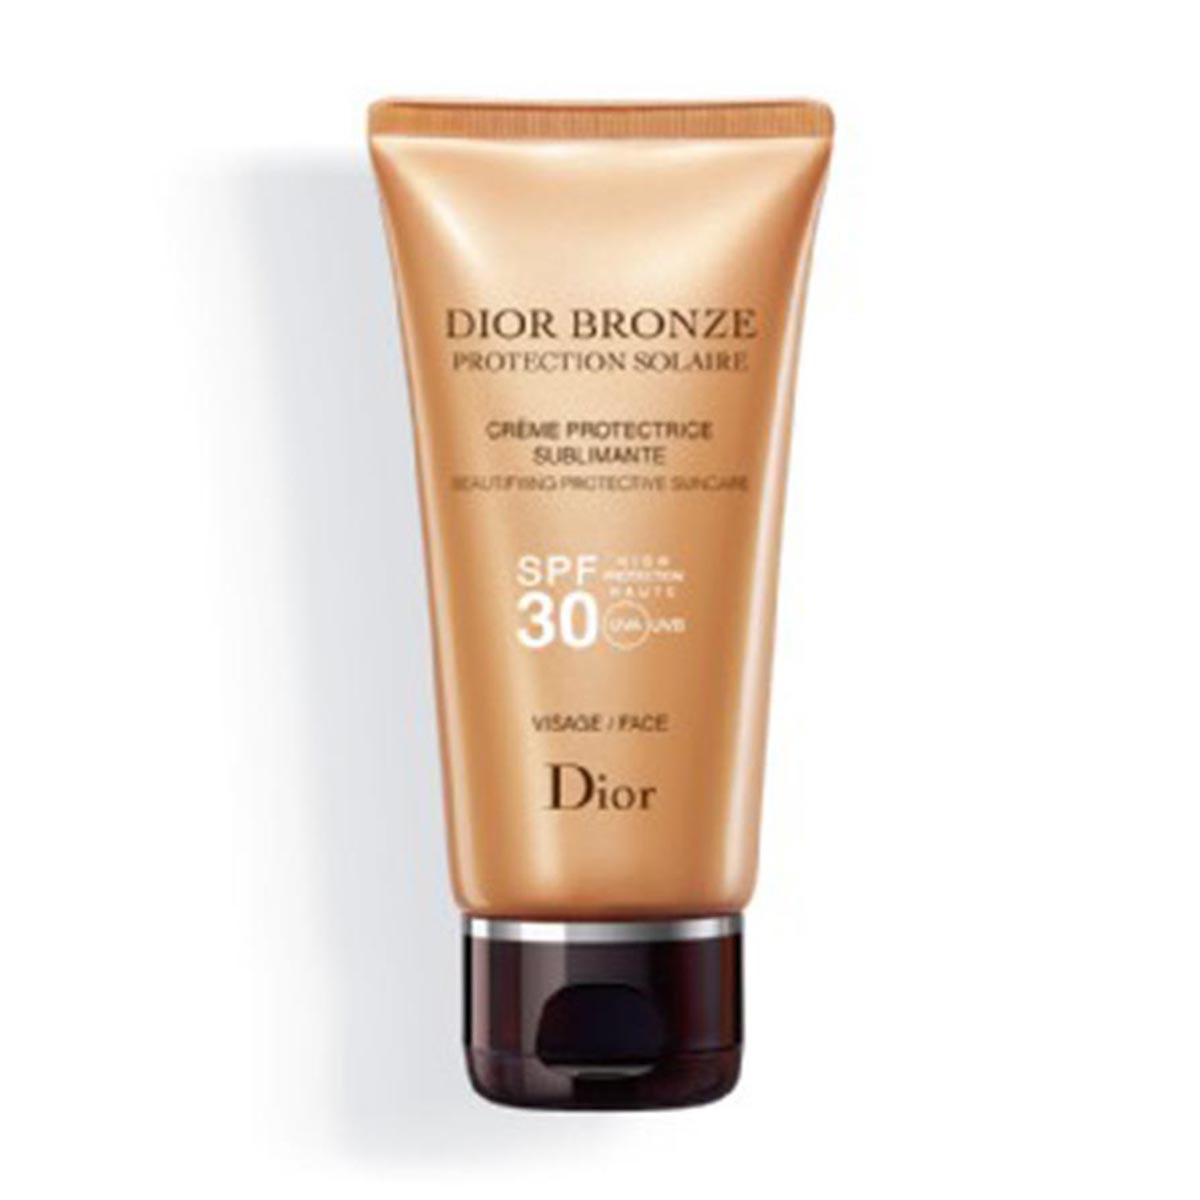 Christian-dior Bronze Protective Creme Sublime Glow Face Spf30 50 Ml